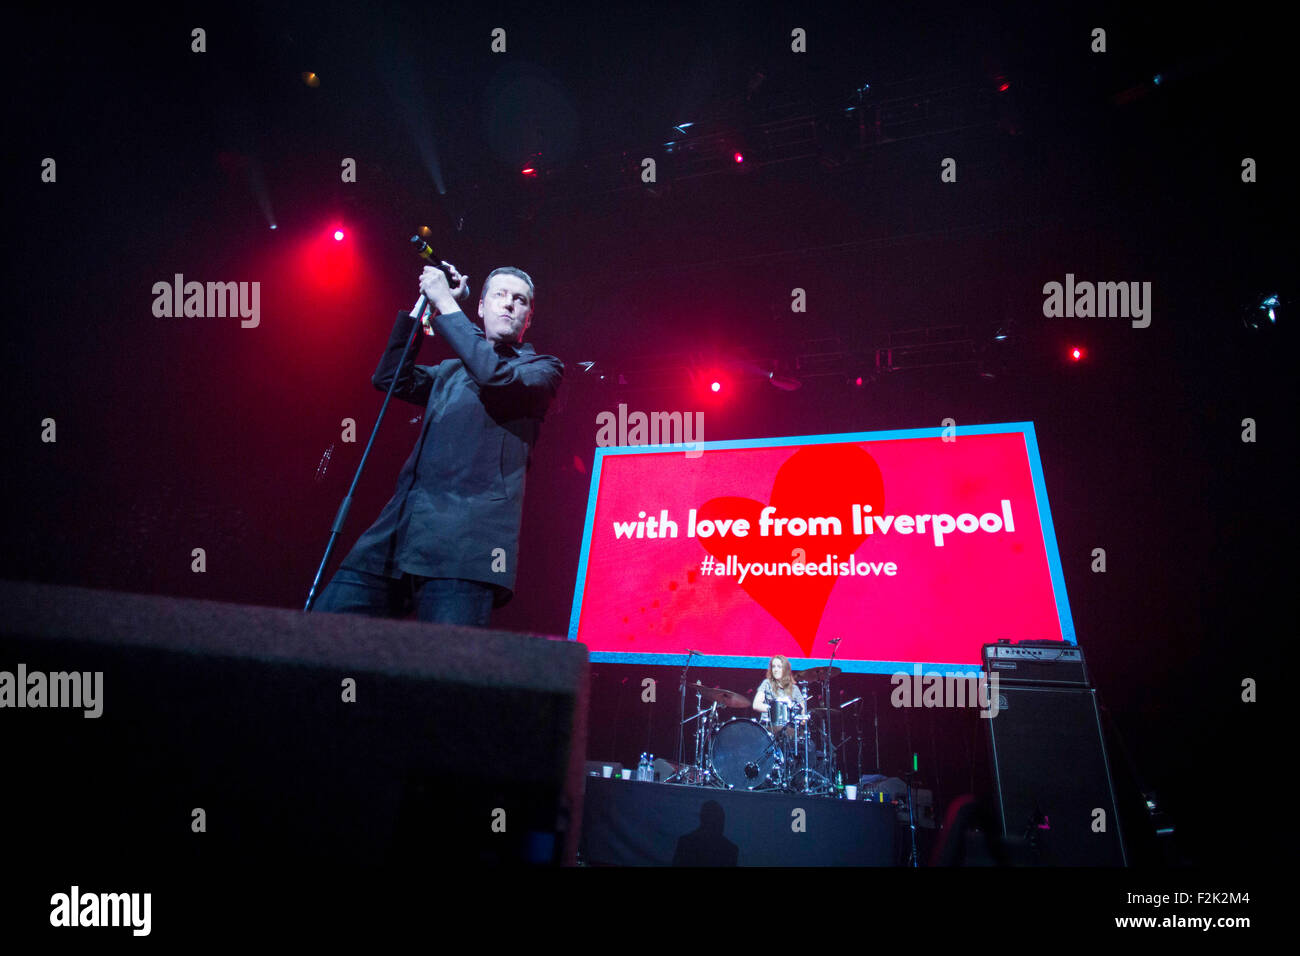 19/9/15 With Love From Liverpool Concert Peter Hooton is the vocalist of Liverpool-based group The Farm. - Stock Image